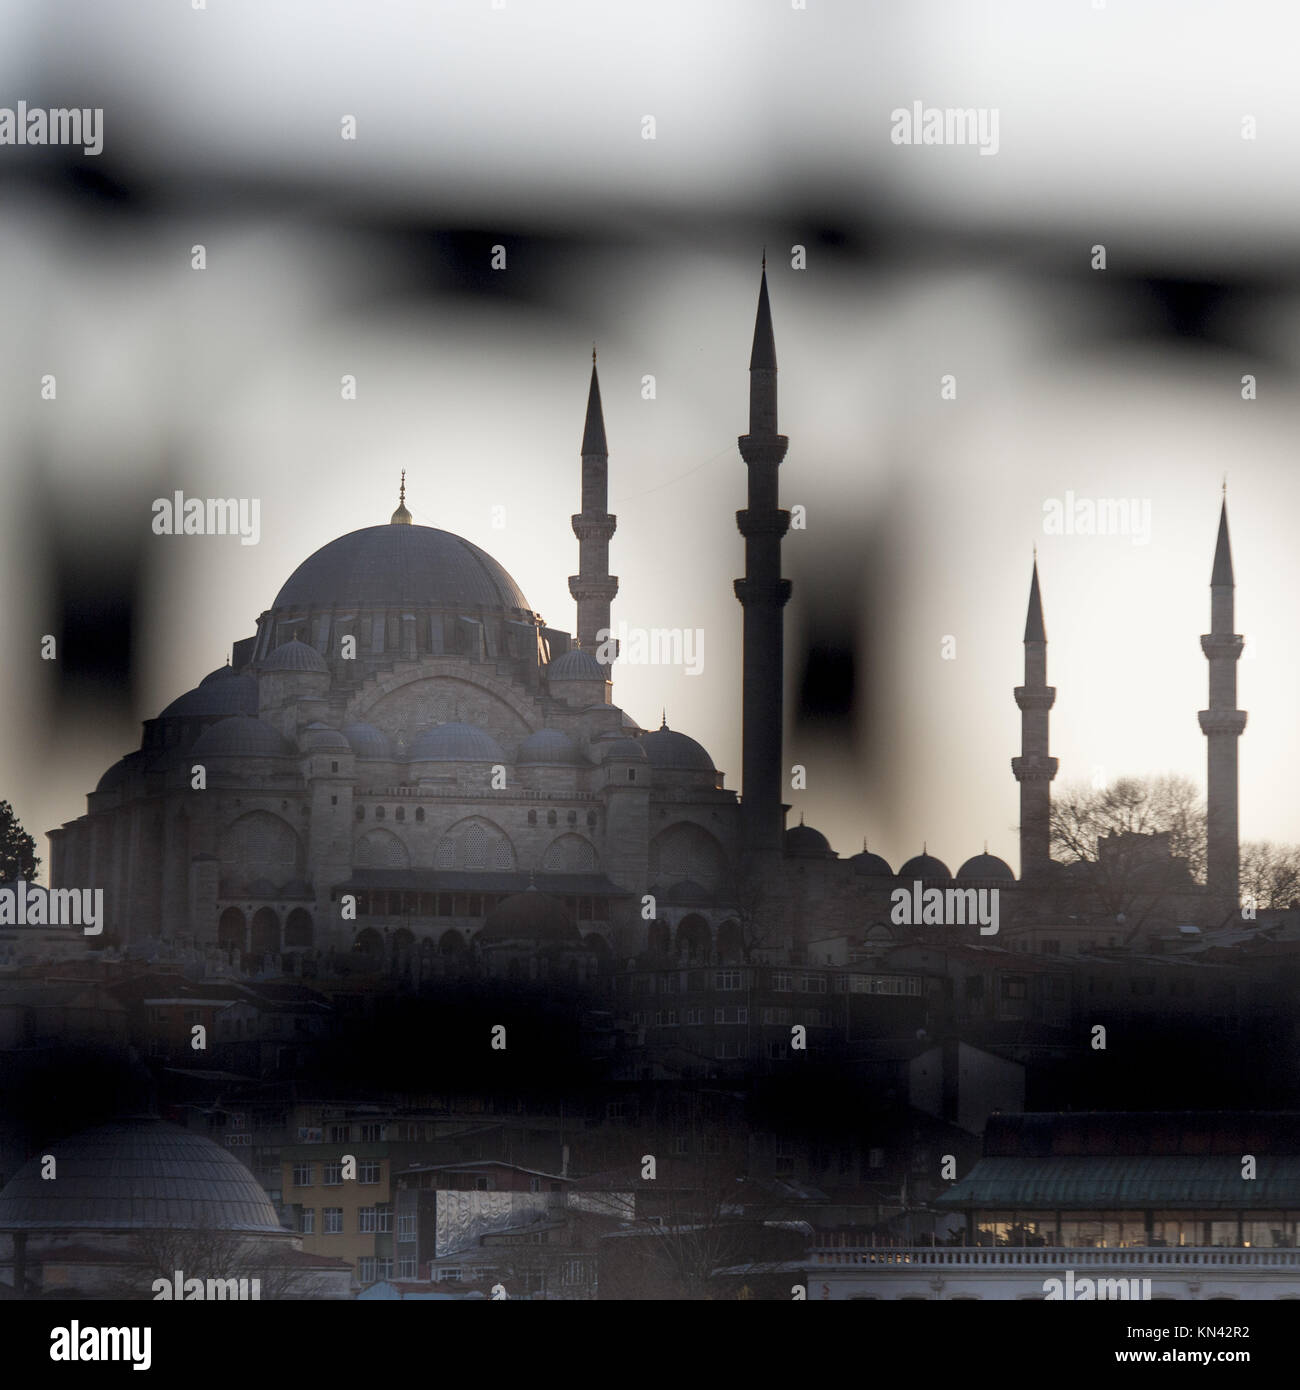 Rustem Pasha Mosque in a city, Istanbul, Turkey. - Stock Image